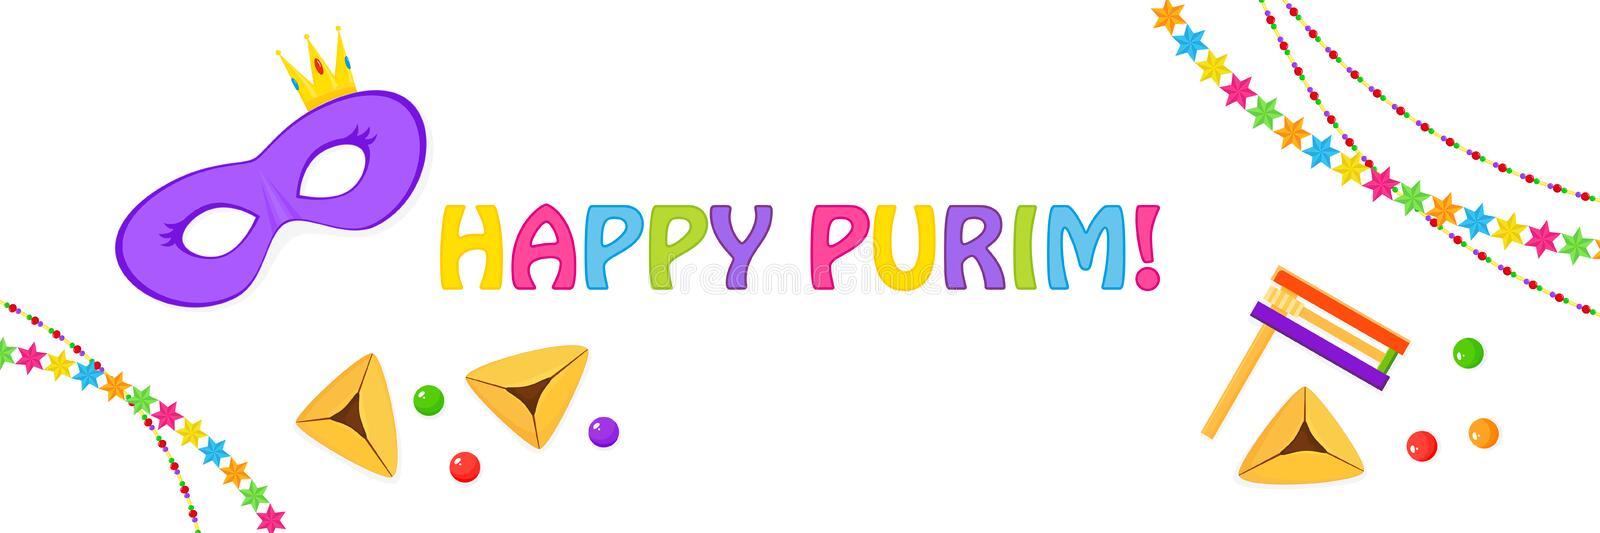 Jewish holiday of Purim, greeting banner. Jewish holiday of Purim, banner with mask, traditional hamantaschen cookies, gragger noise maker, dragee and garlands stock illustration